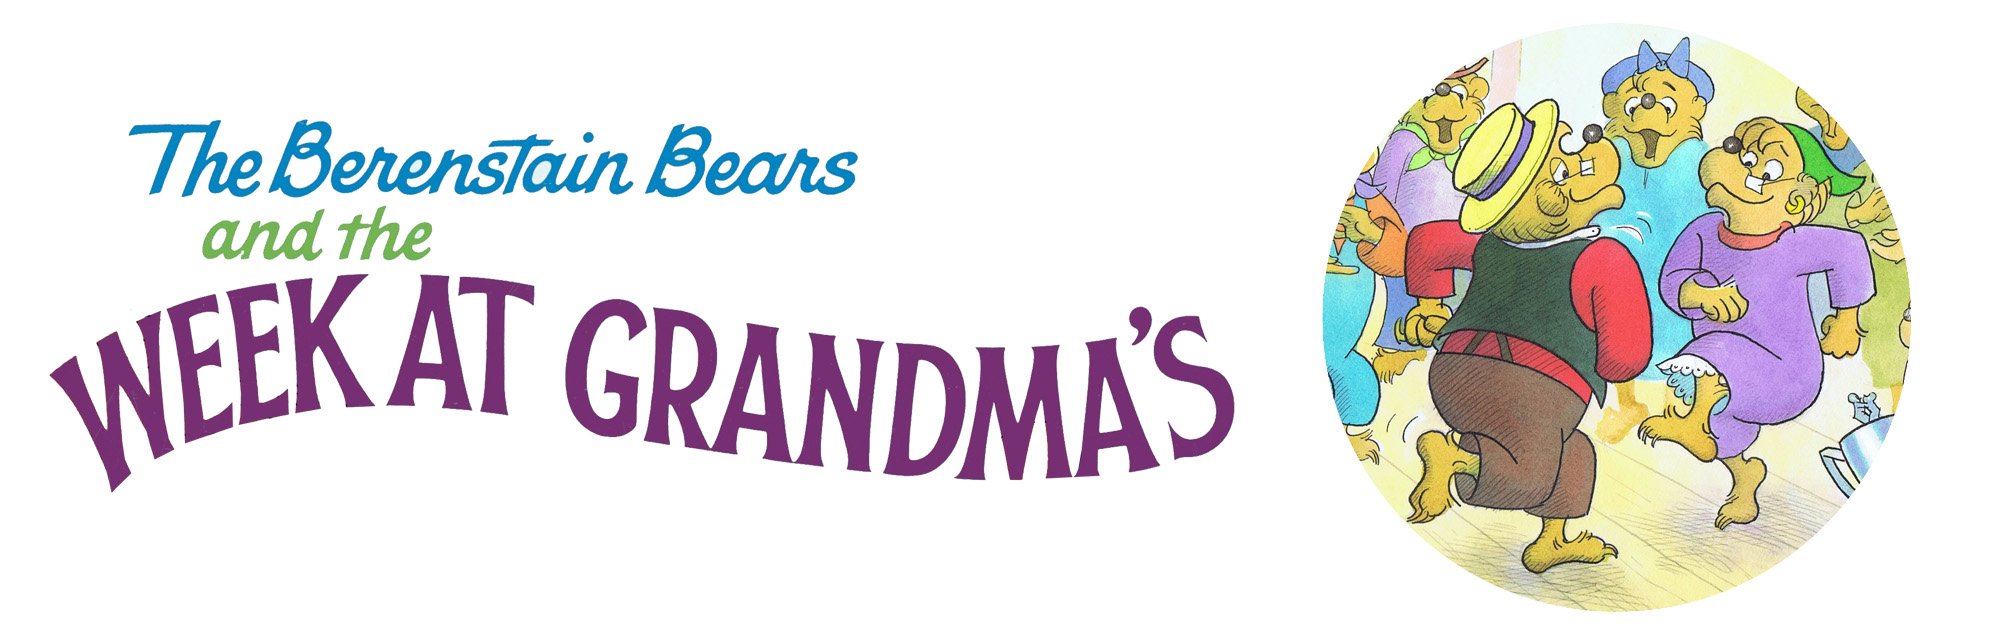 Week at grandmas logo